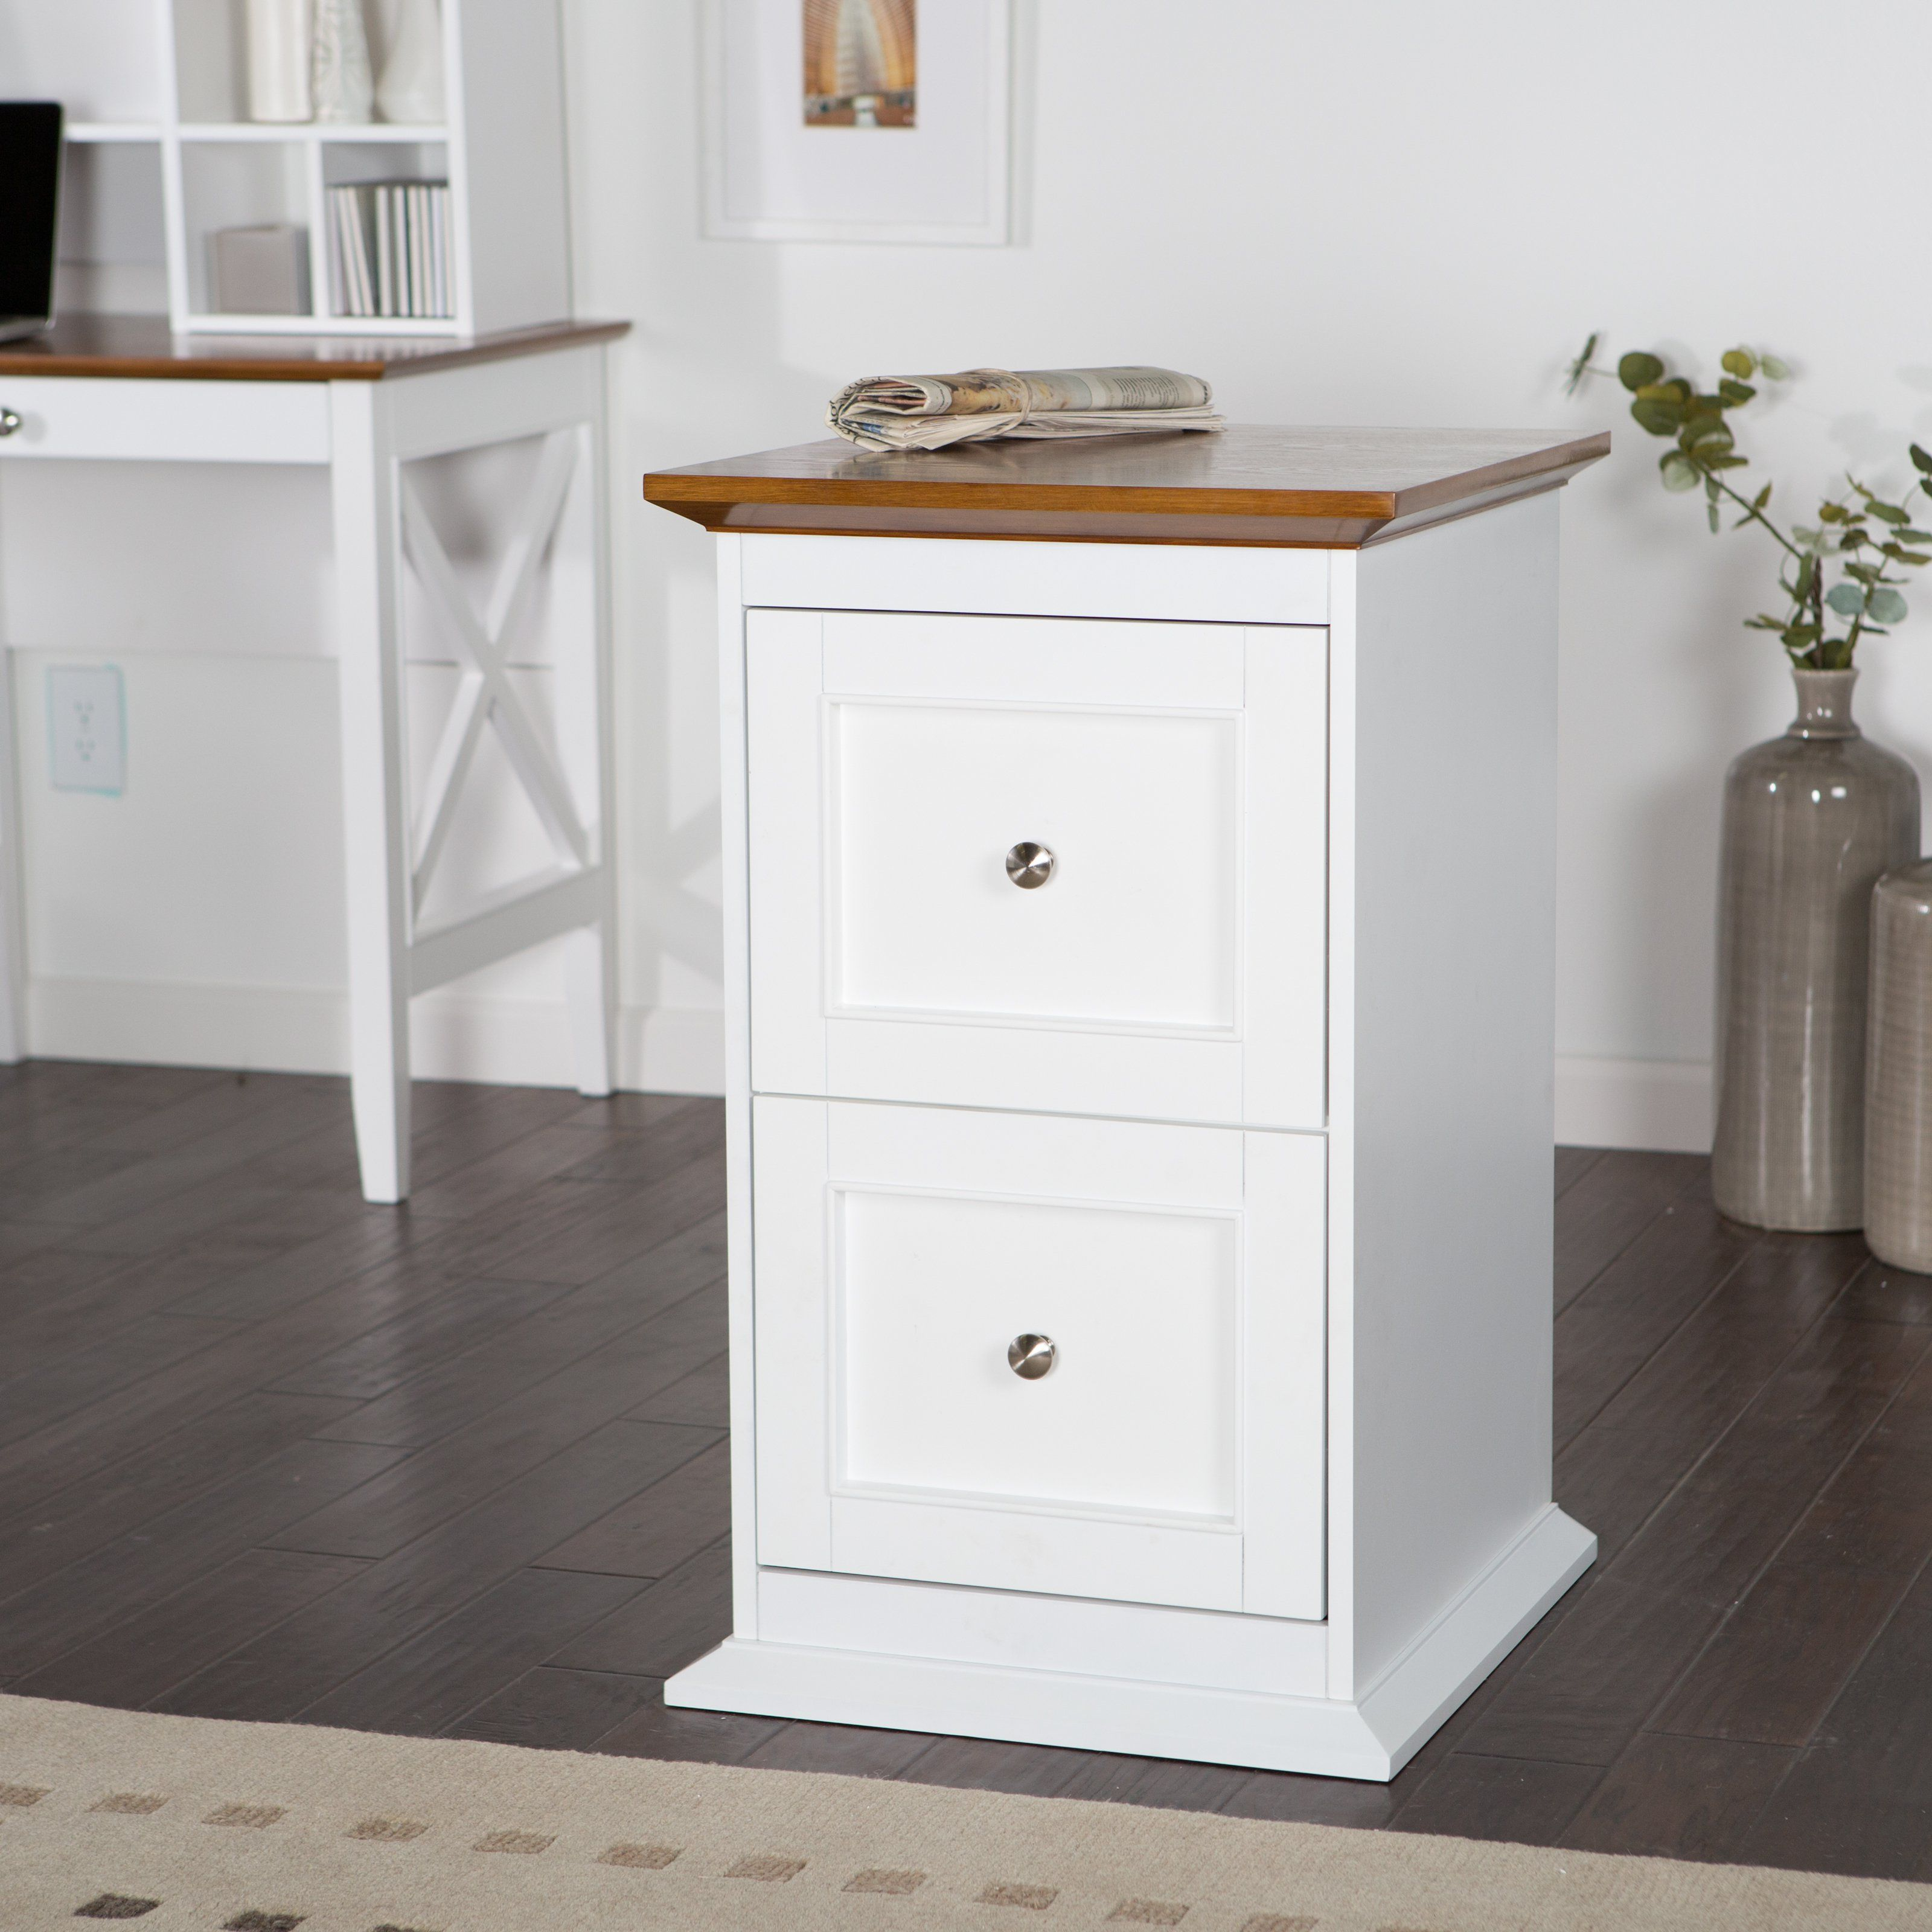 Belham Living Hampton 2 Drawer Wood File Cabinet White Oak Bring Style And Functionality To Your Home Office W Filing Cabinet Wood File Wooden File Cabinet